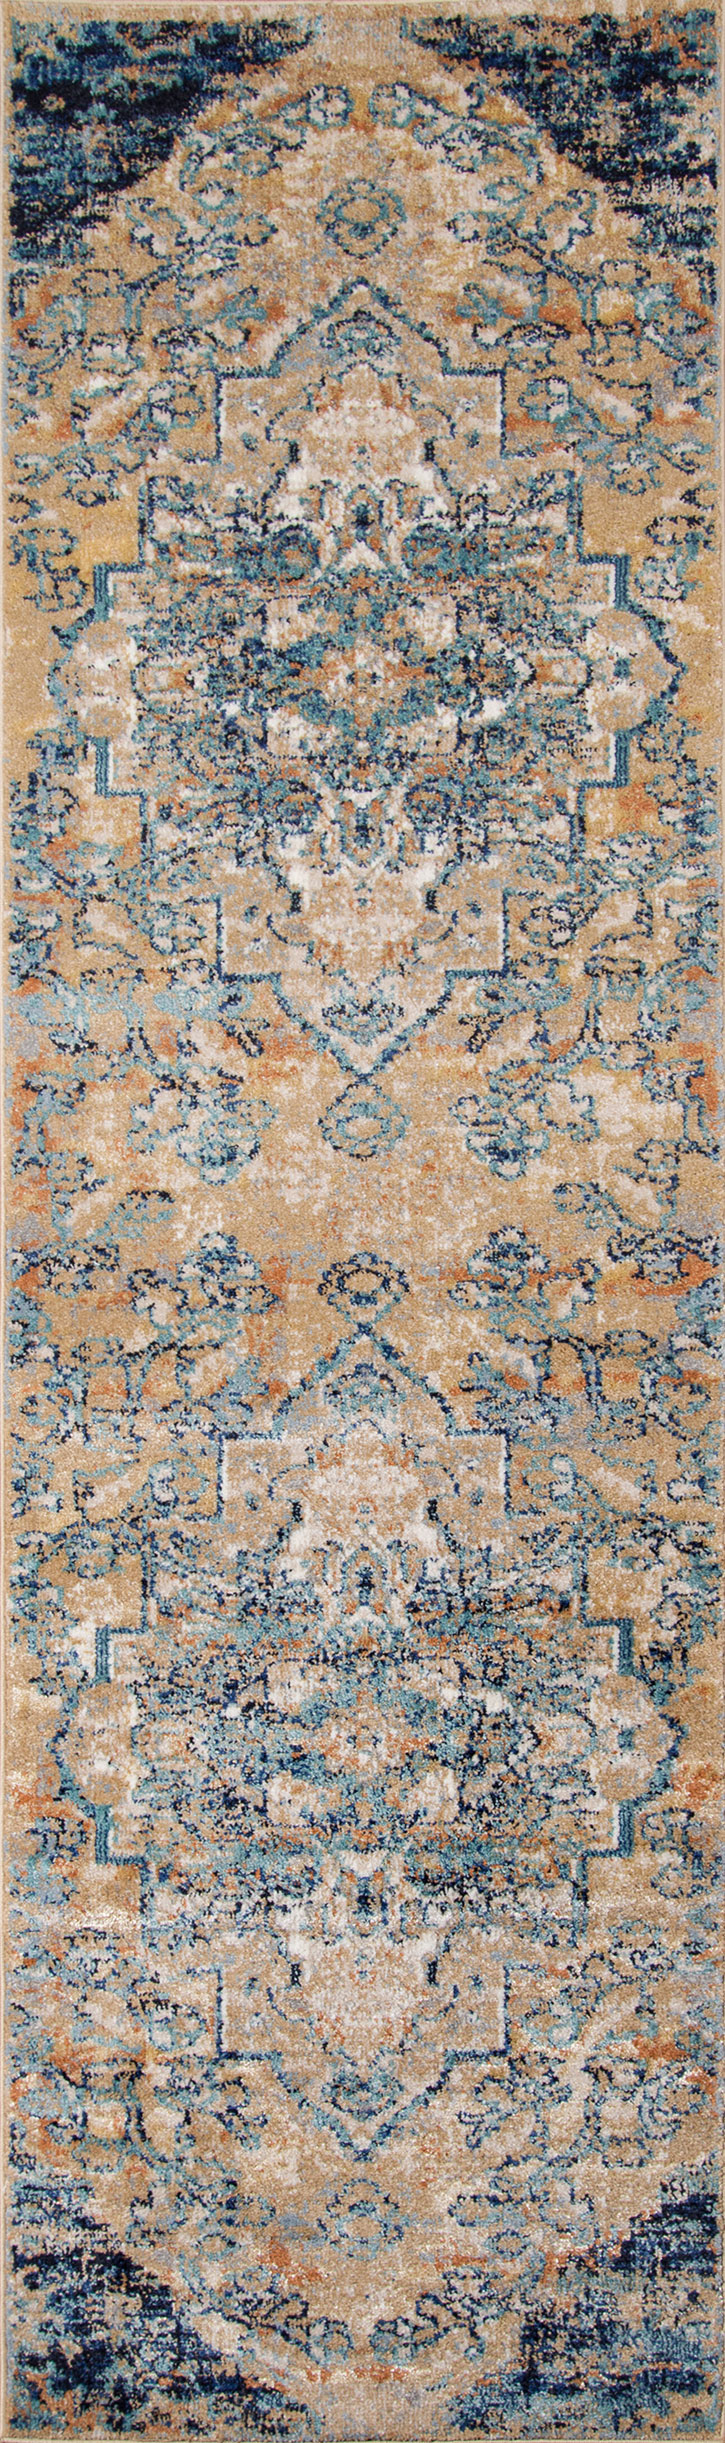 the rugs in the amelia collection by momeni use designs and updates them for a more modern look with an updated color palette and a - Momeni Rugs